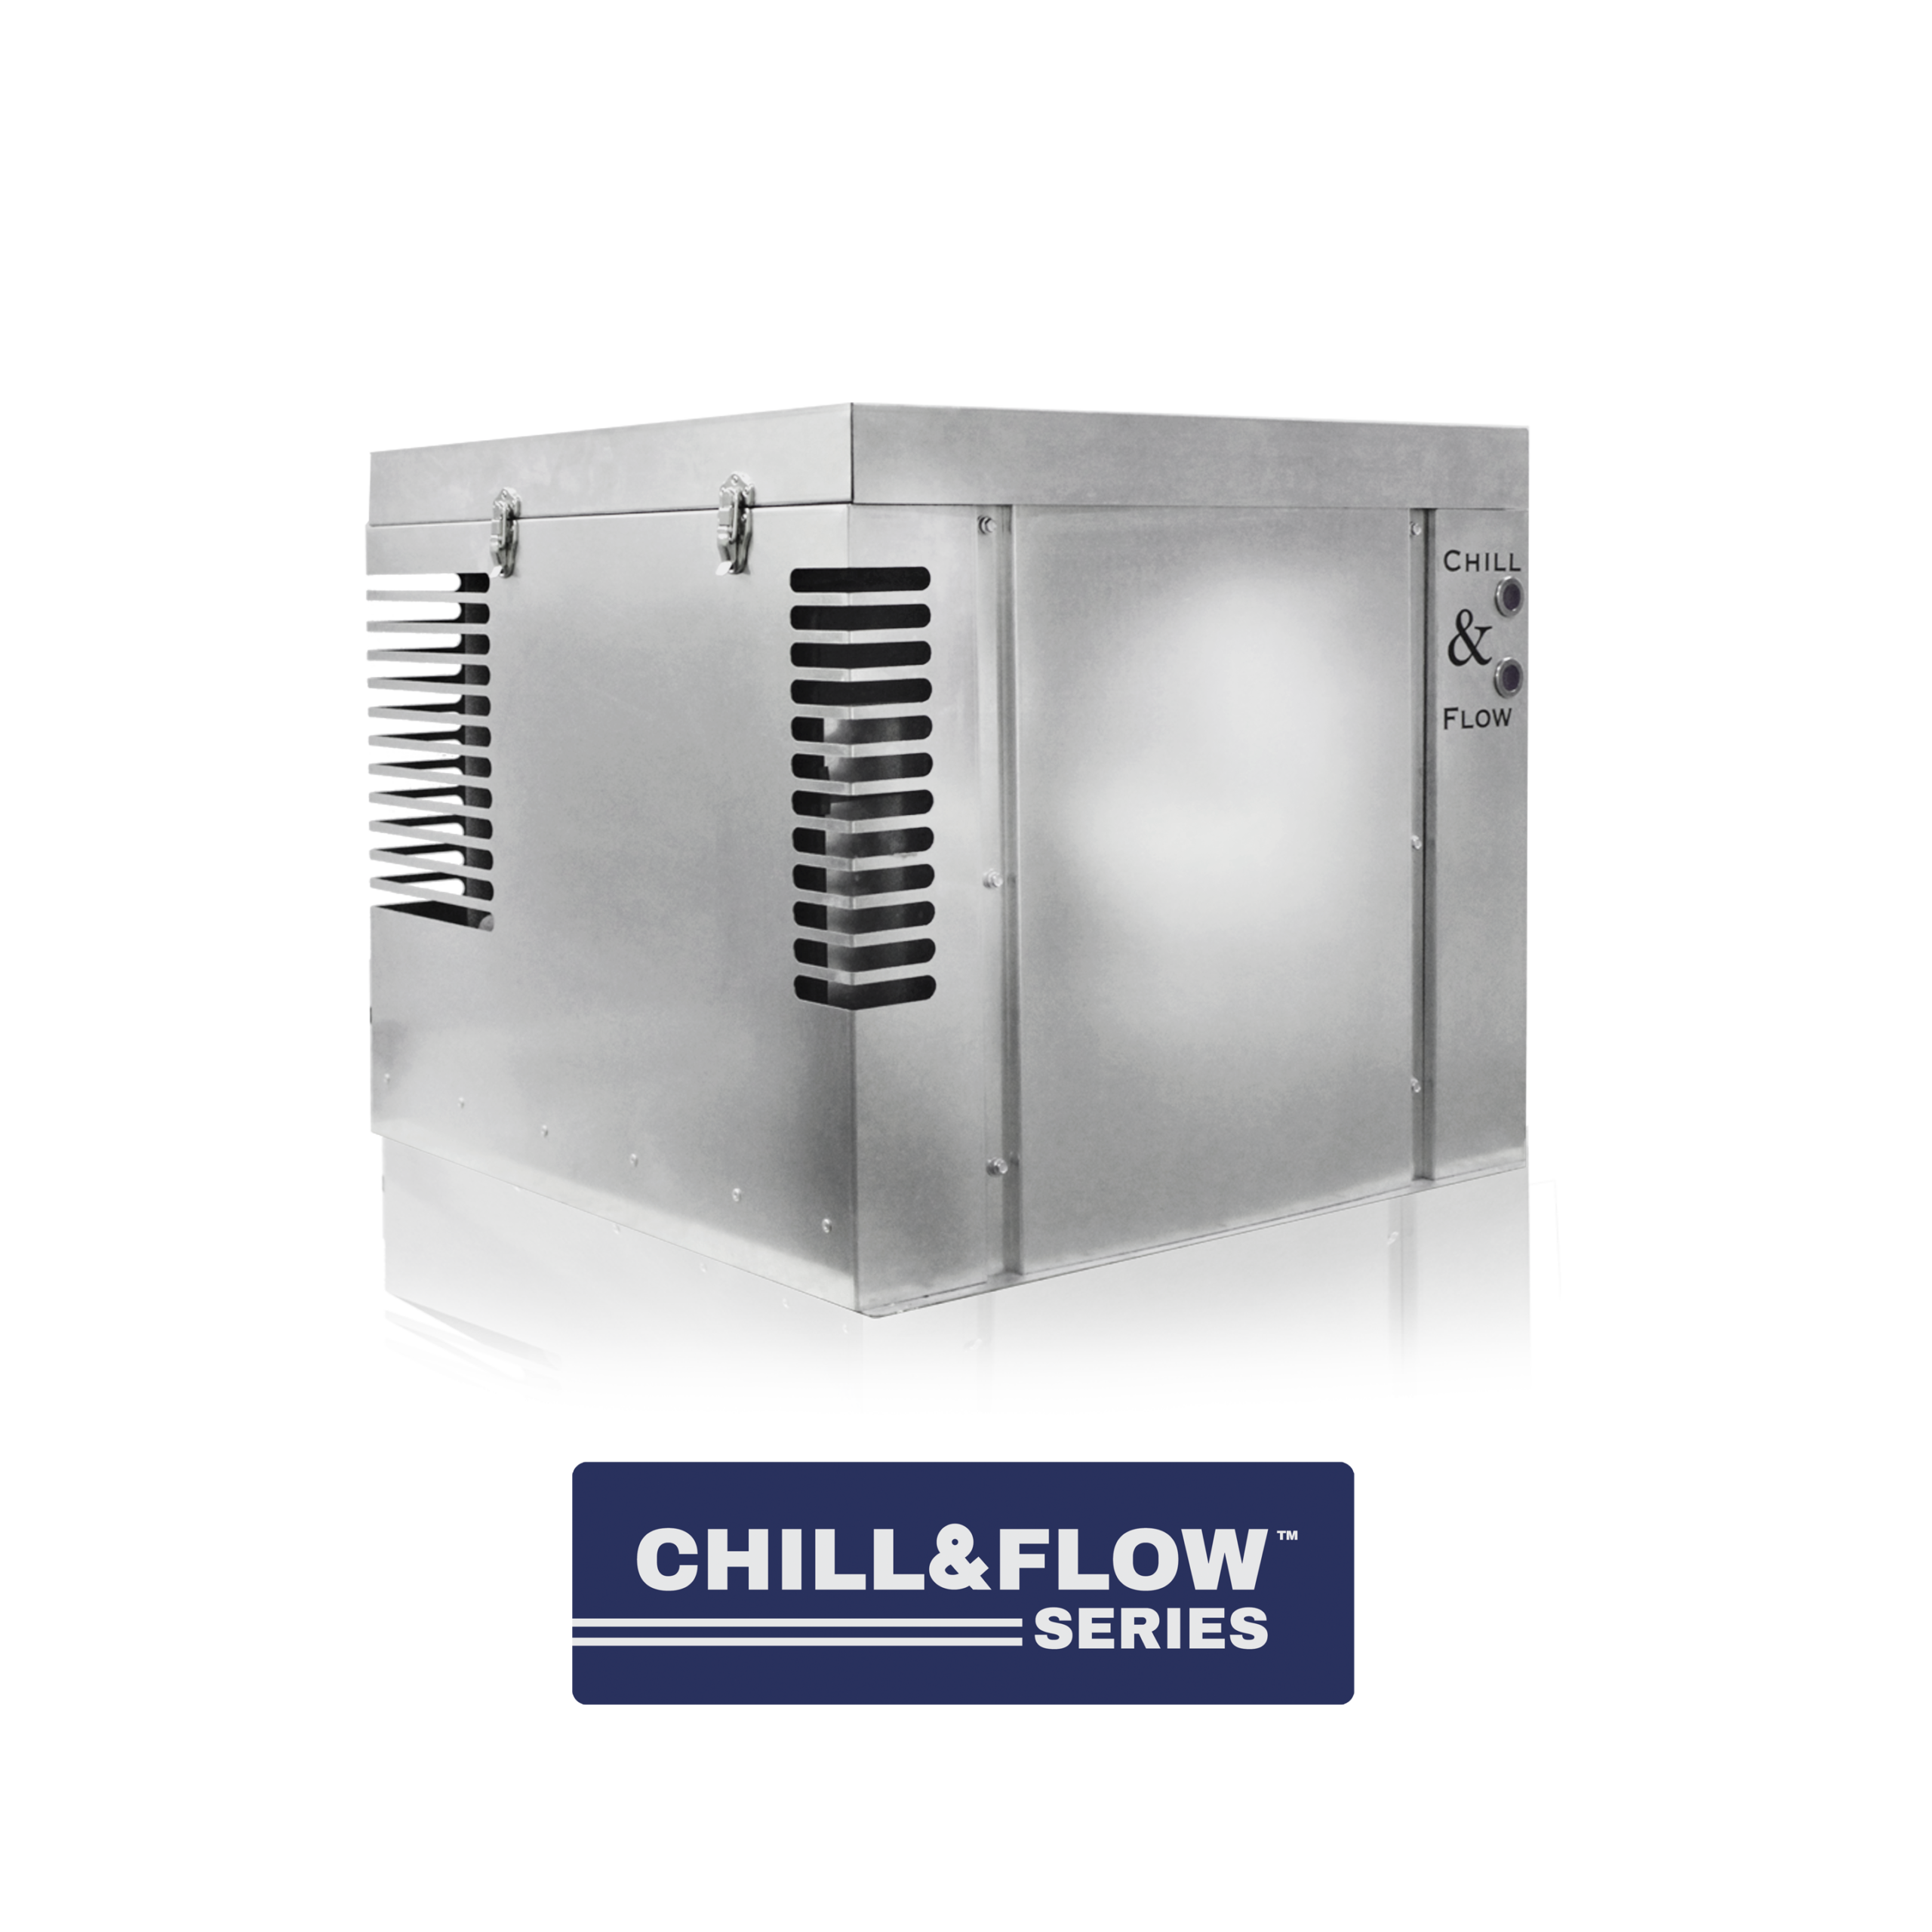 Chill&Flow Series